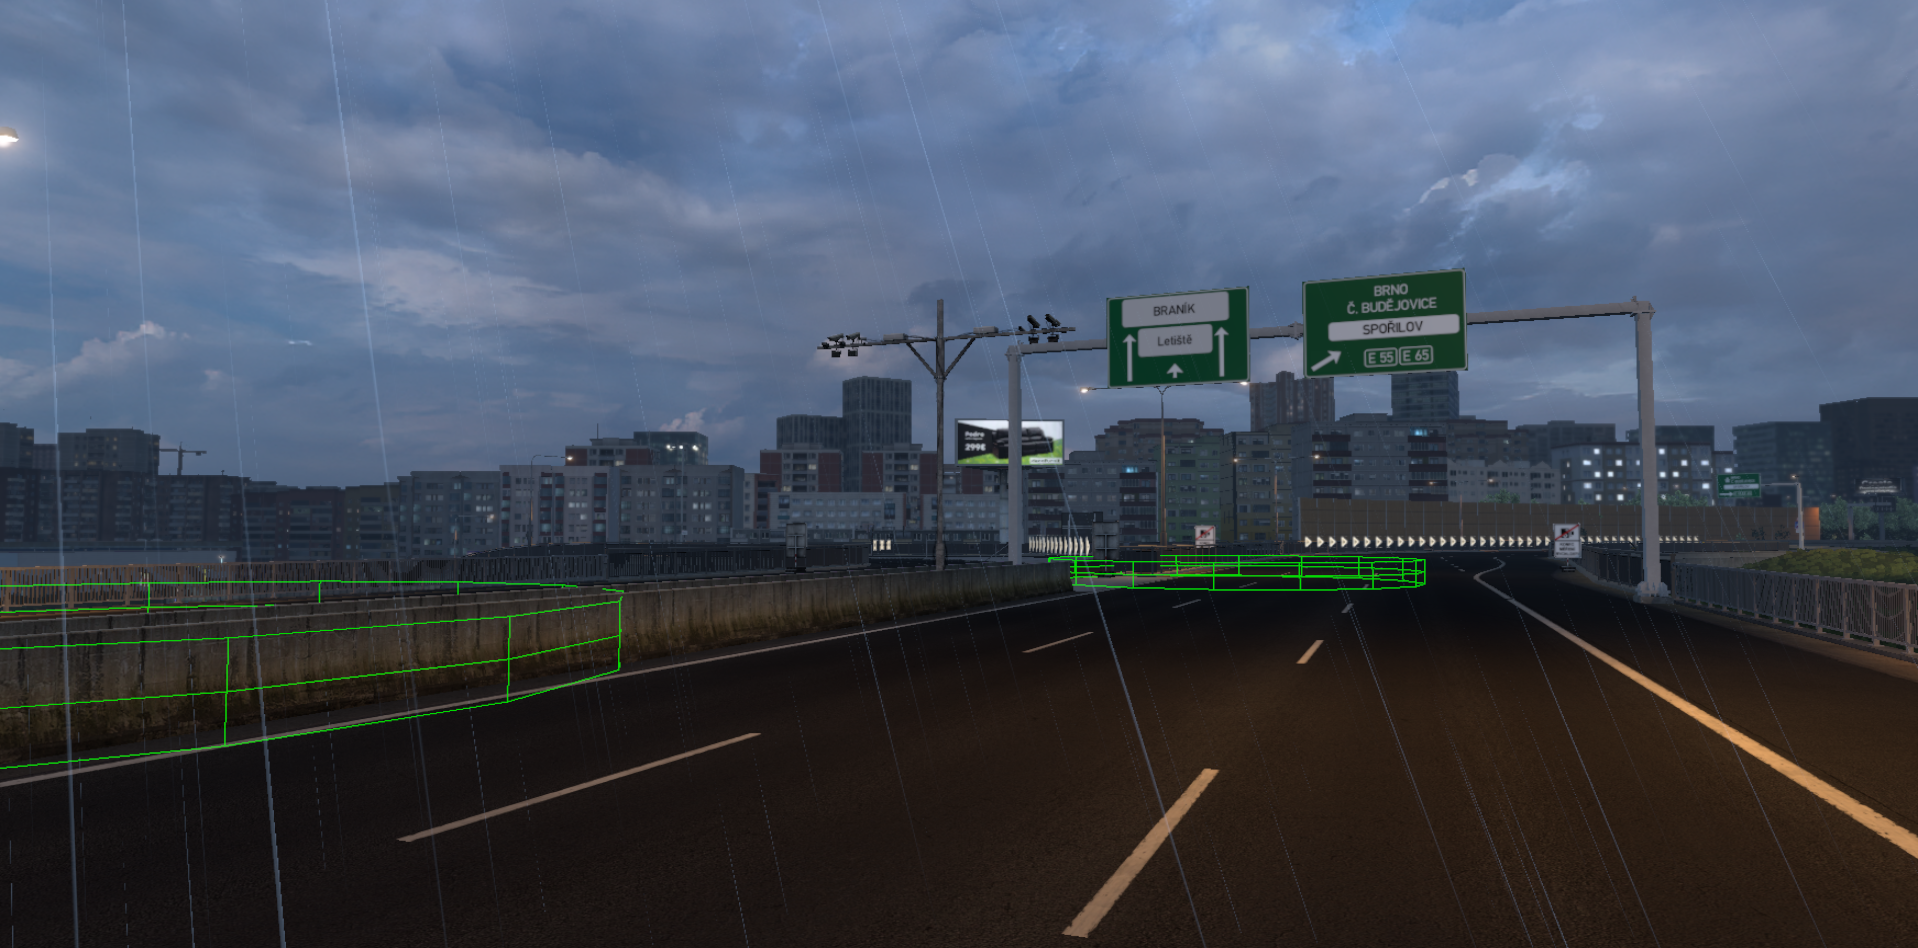 ets2_20210804_144414_00.png